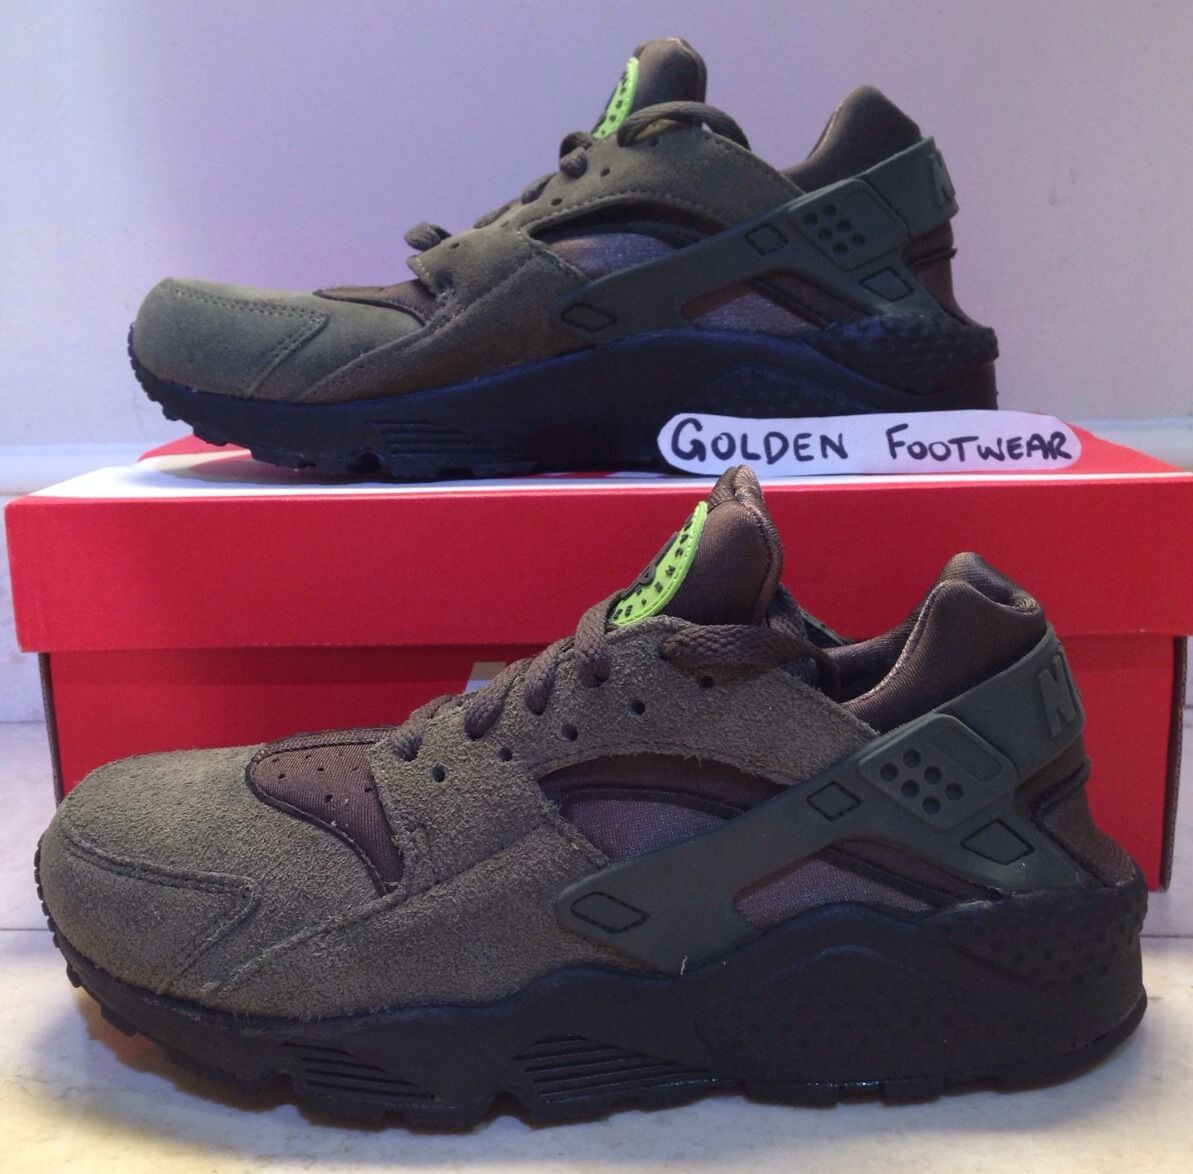 Nike Air Huarache LE Limited *** Editions, Size 6 UK, *** Limited Sold Out *** 816214